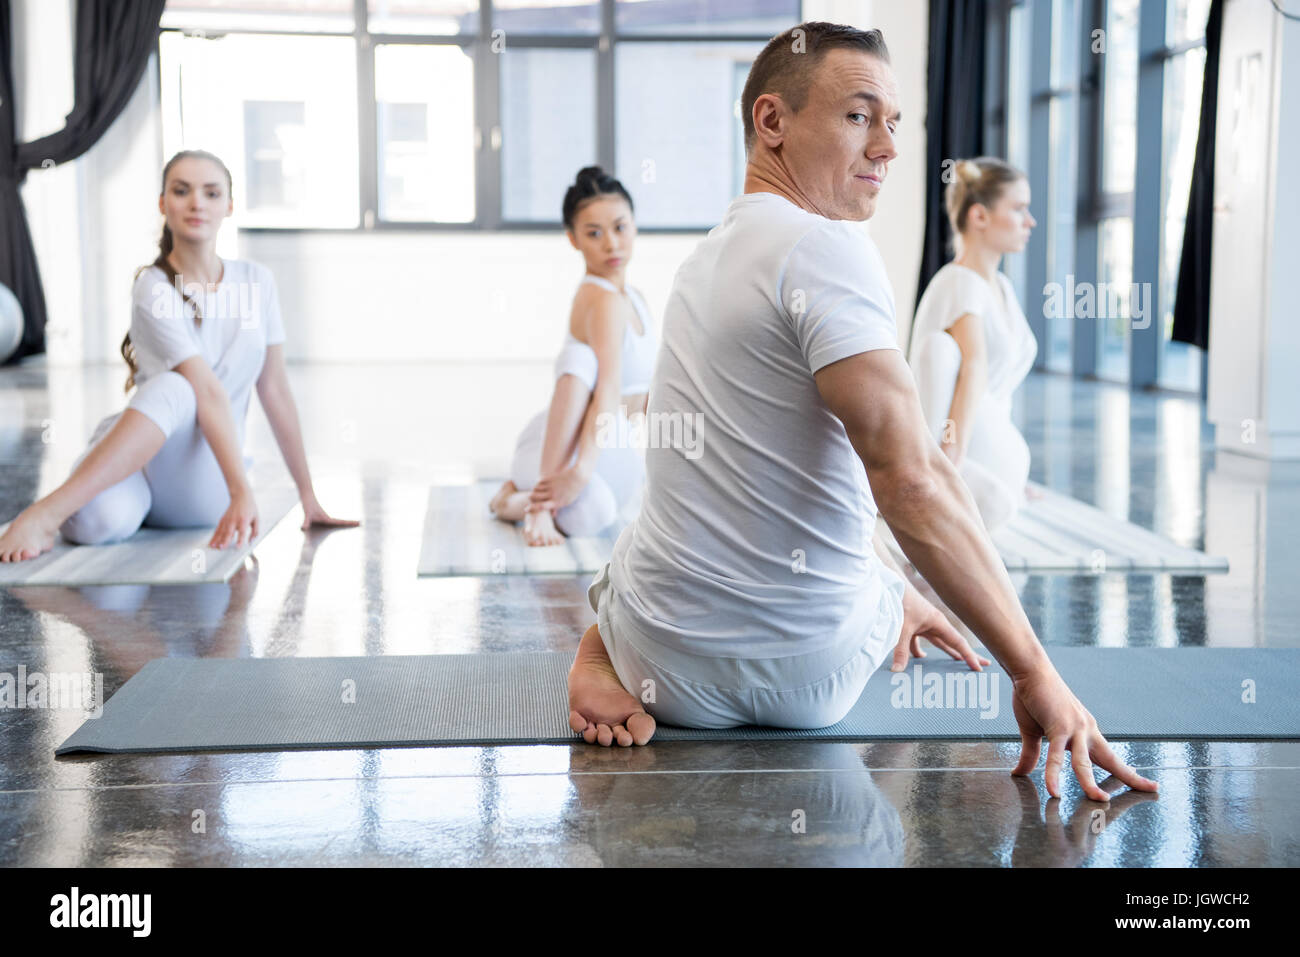 yoga trainer and his group practicing half spinal twist pose in gym - Stock Image